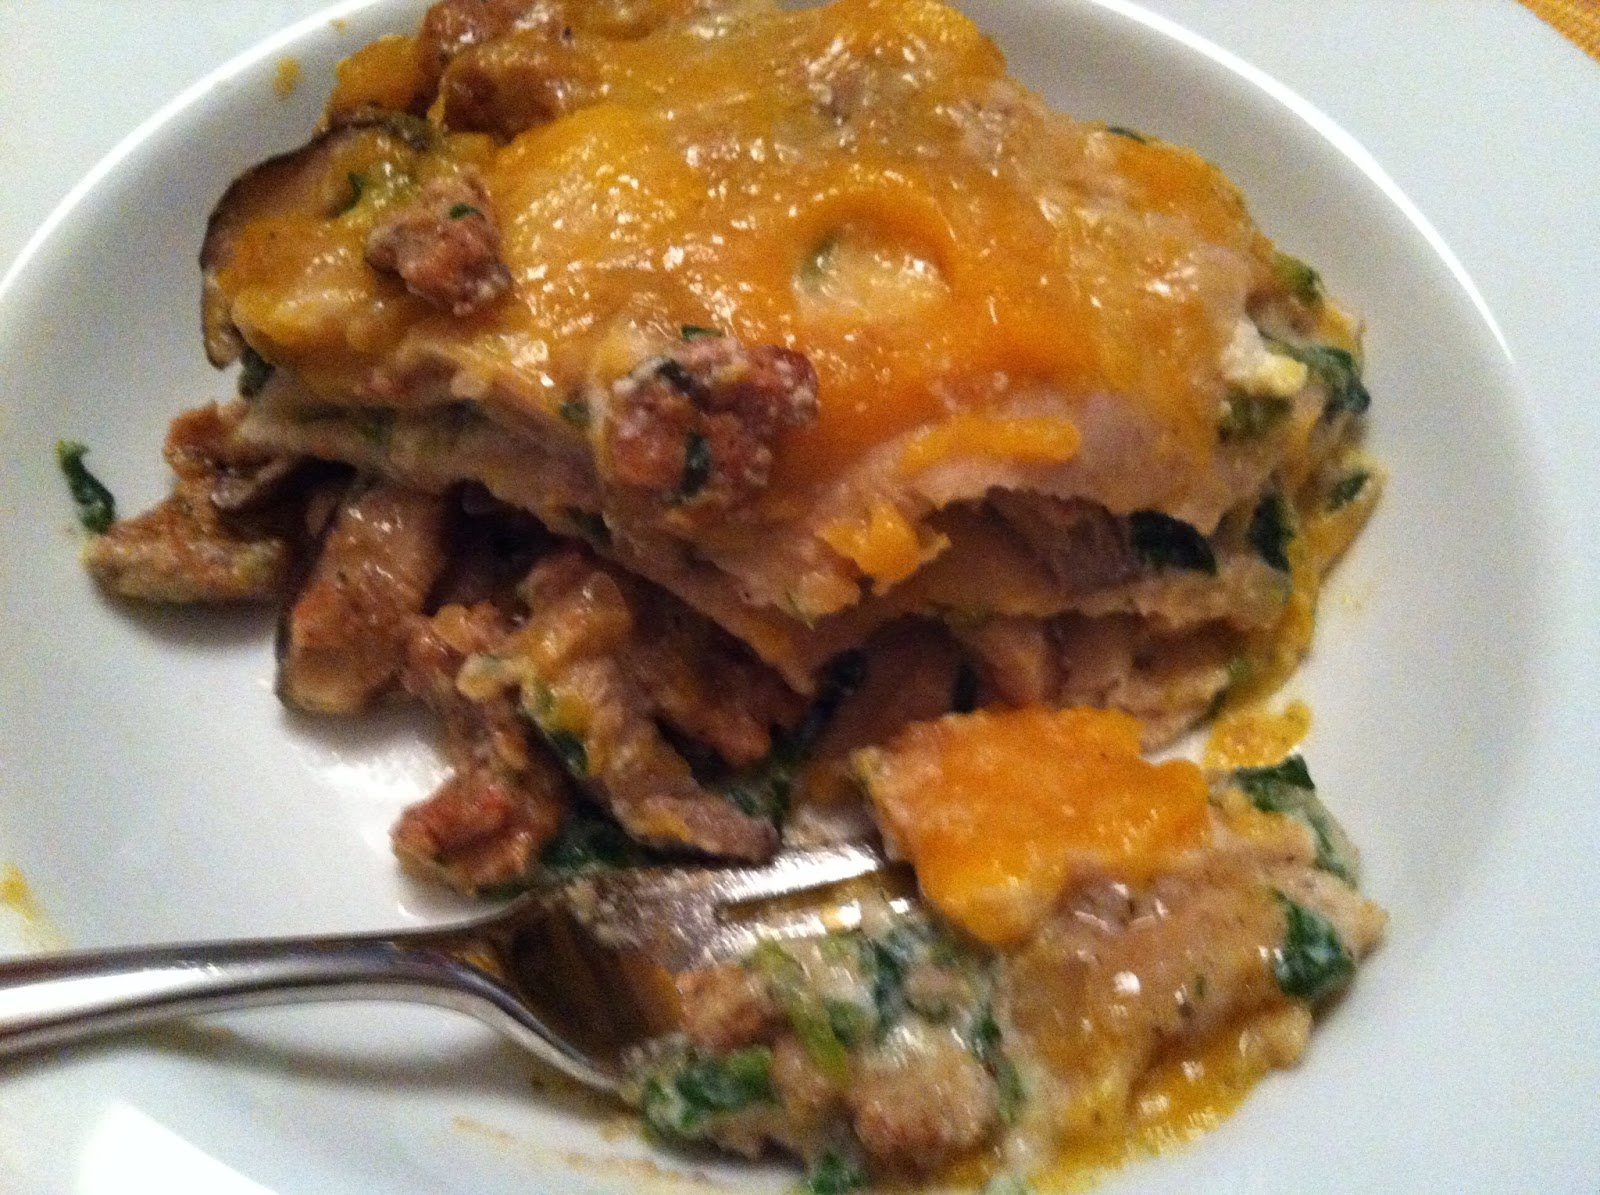 ... : Butternut Squash Lasagna with Sausage, Mushrooms and Broccoli Rabe